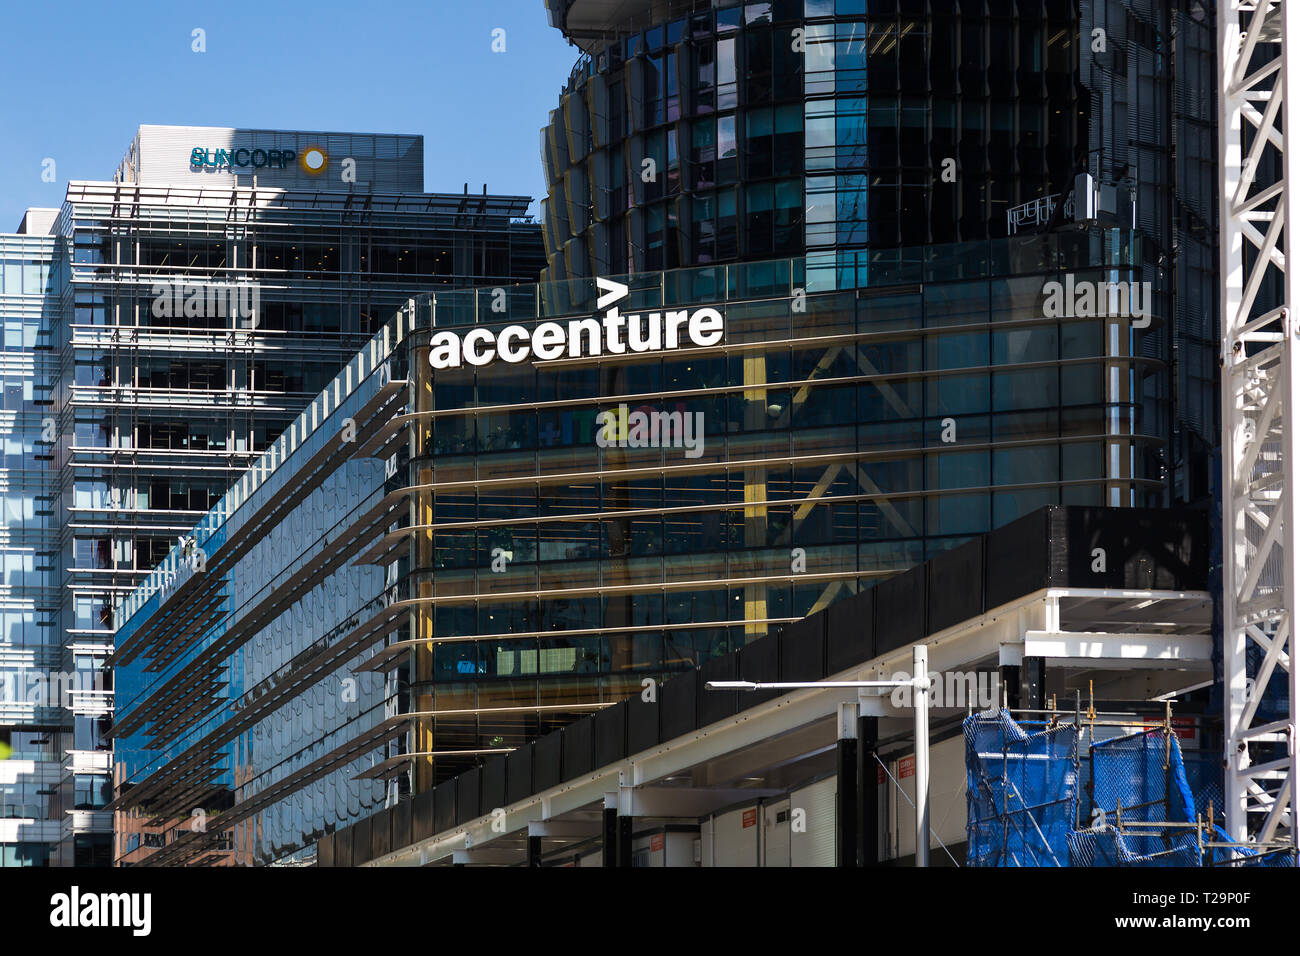 Accenture Stock Photos & Accenture Stock Images - Alamy